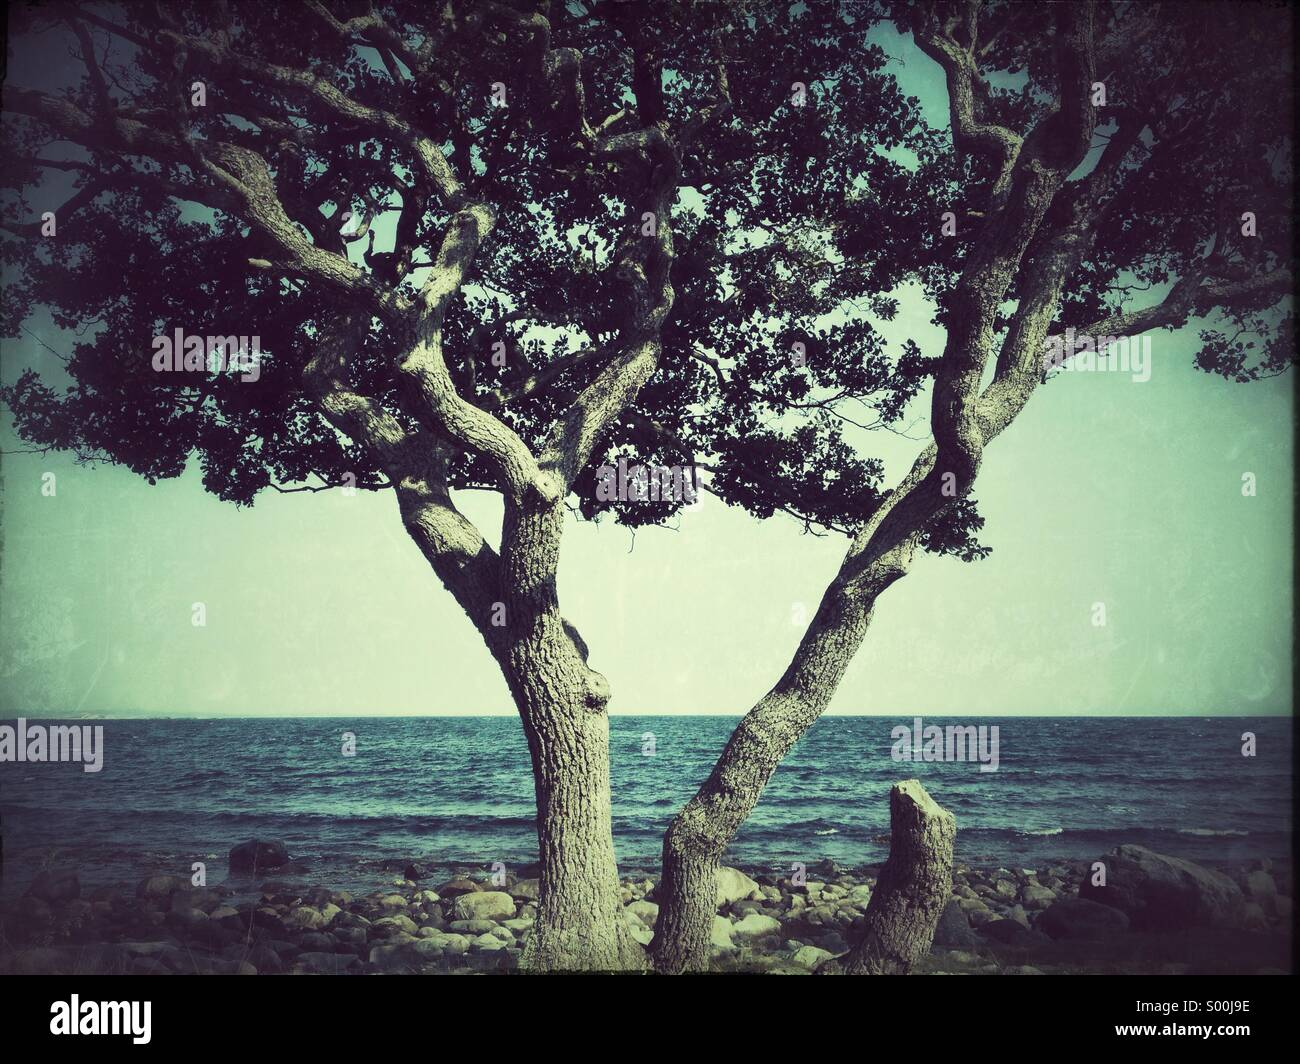 Grungy photo of lone tree on rocky beach, Jomfruland, Norway - Stock Image